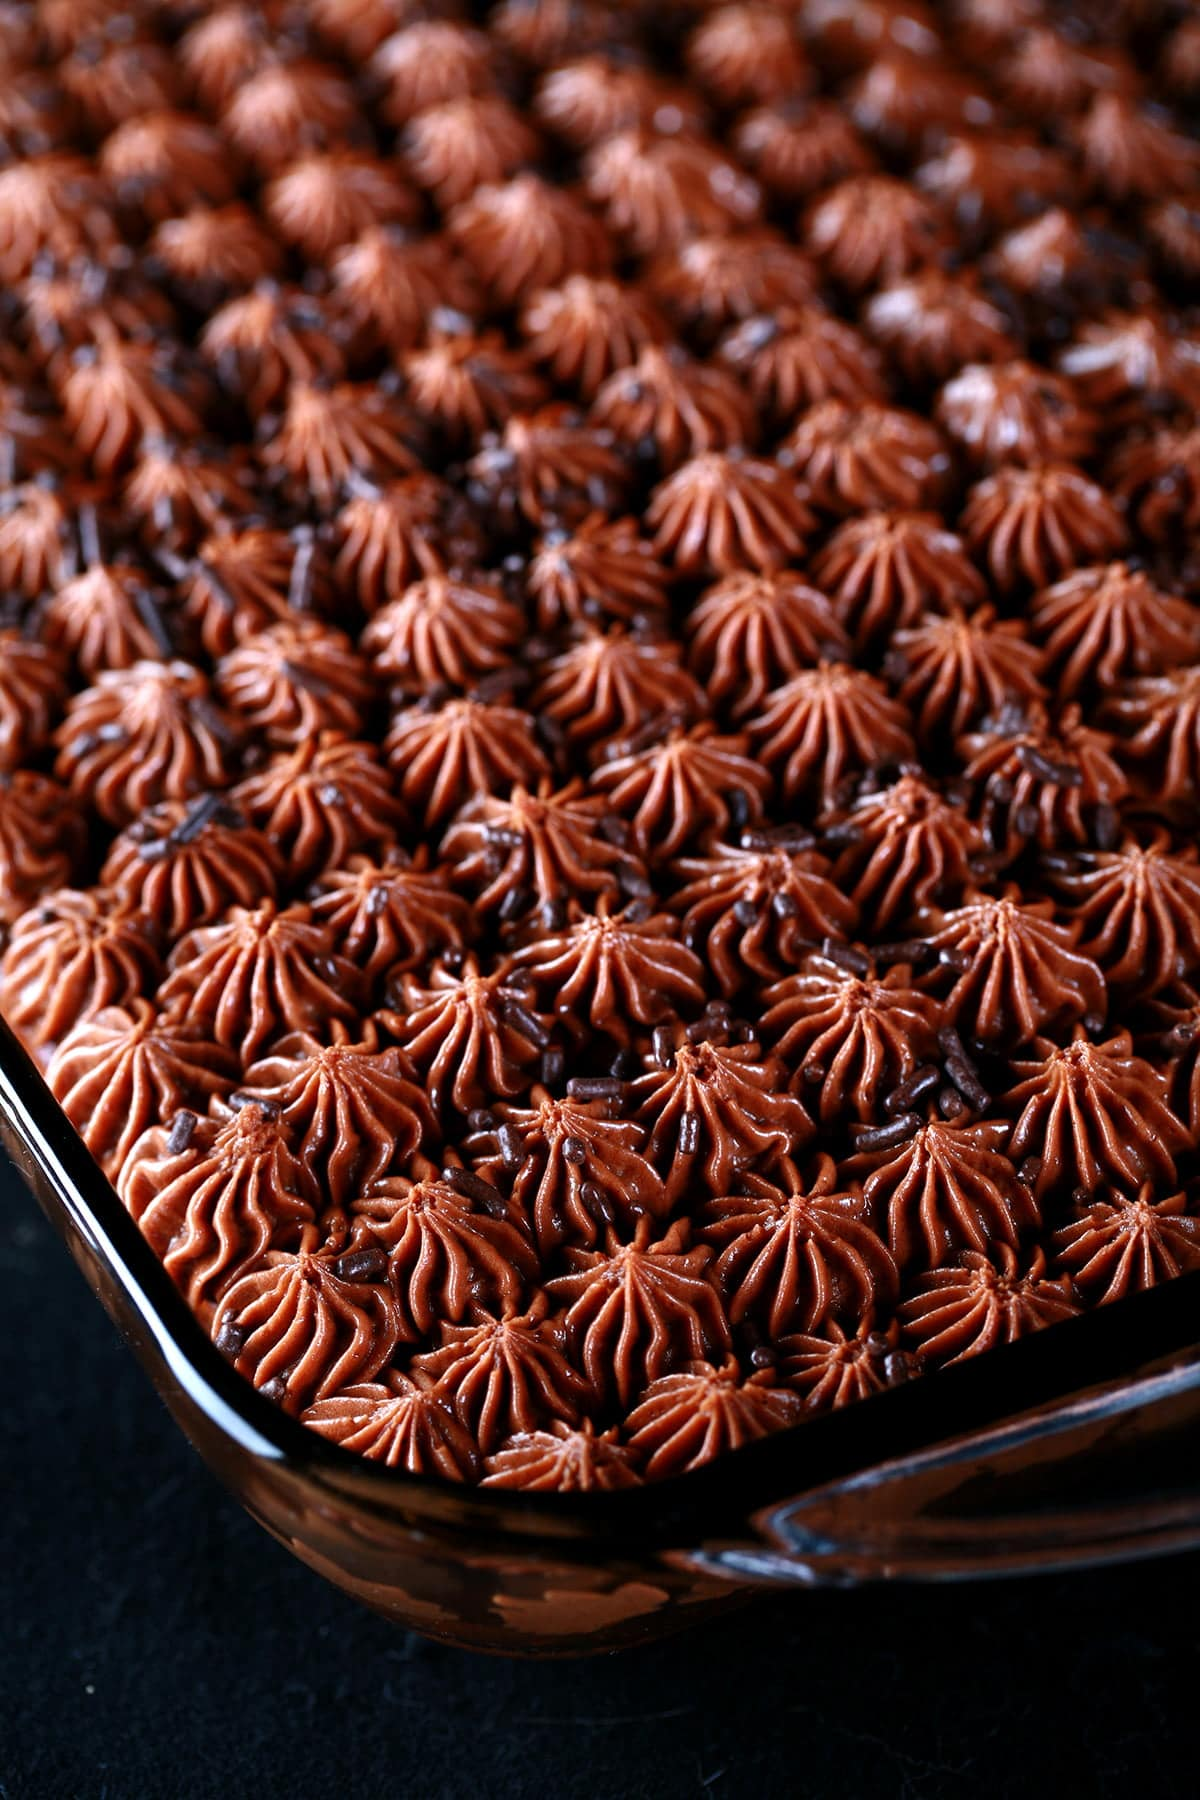 Replica Deep N Delicious Cake: A pan of chocolate cake, with creamy chocolate stars piped all over it, topped with chocolate sprinkles.